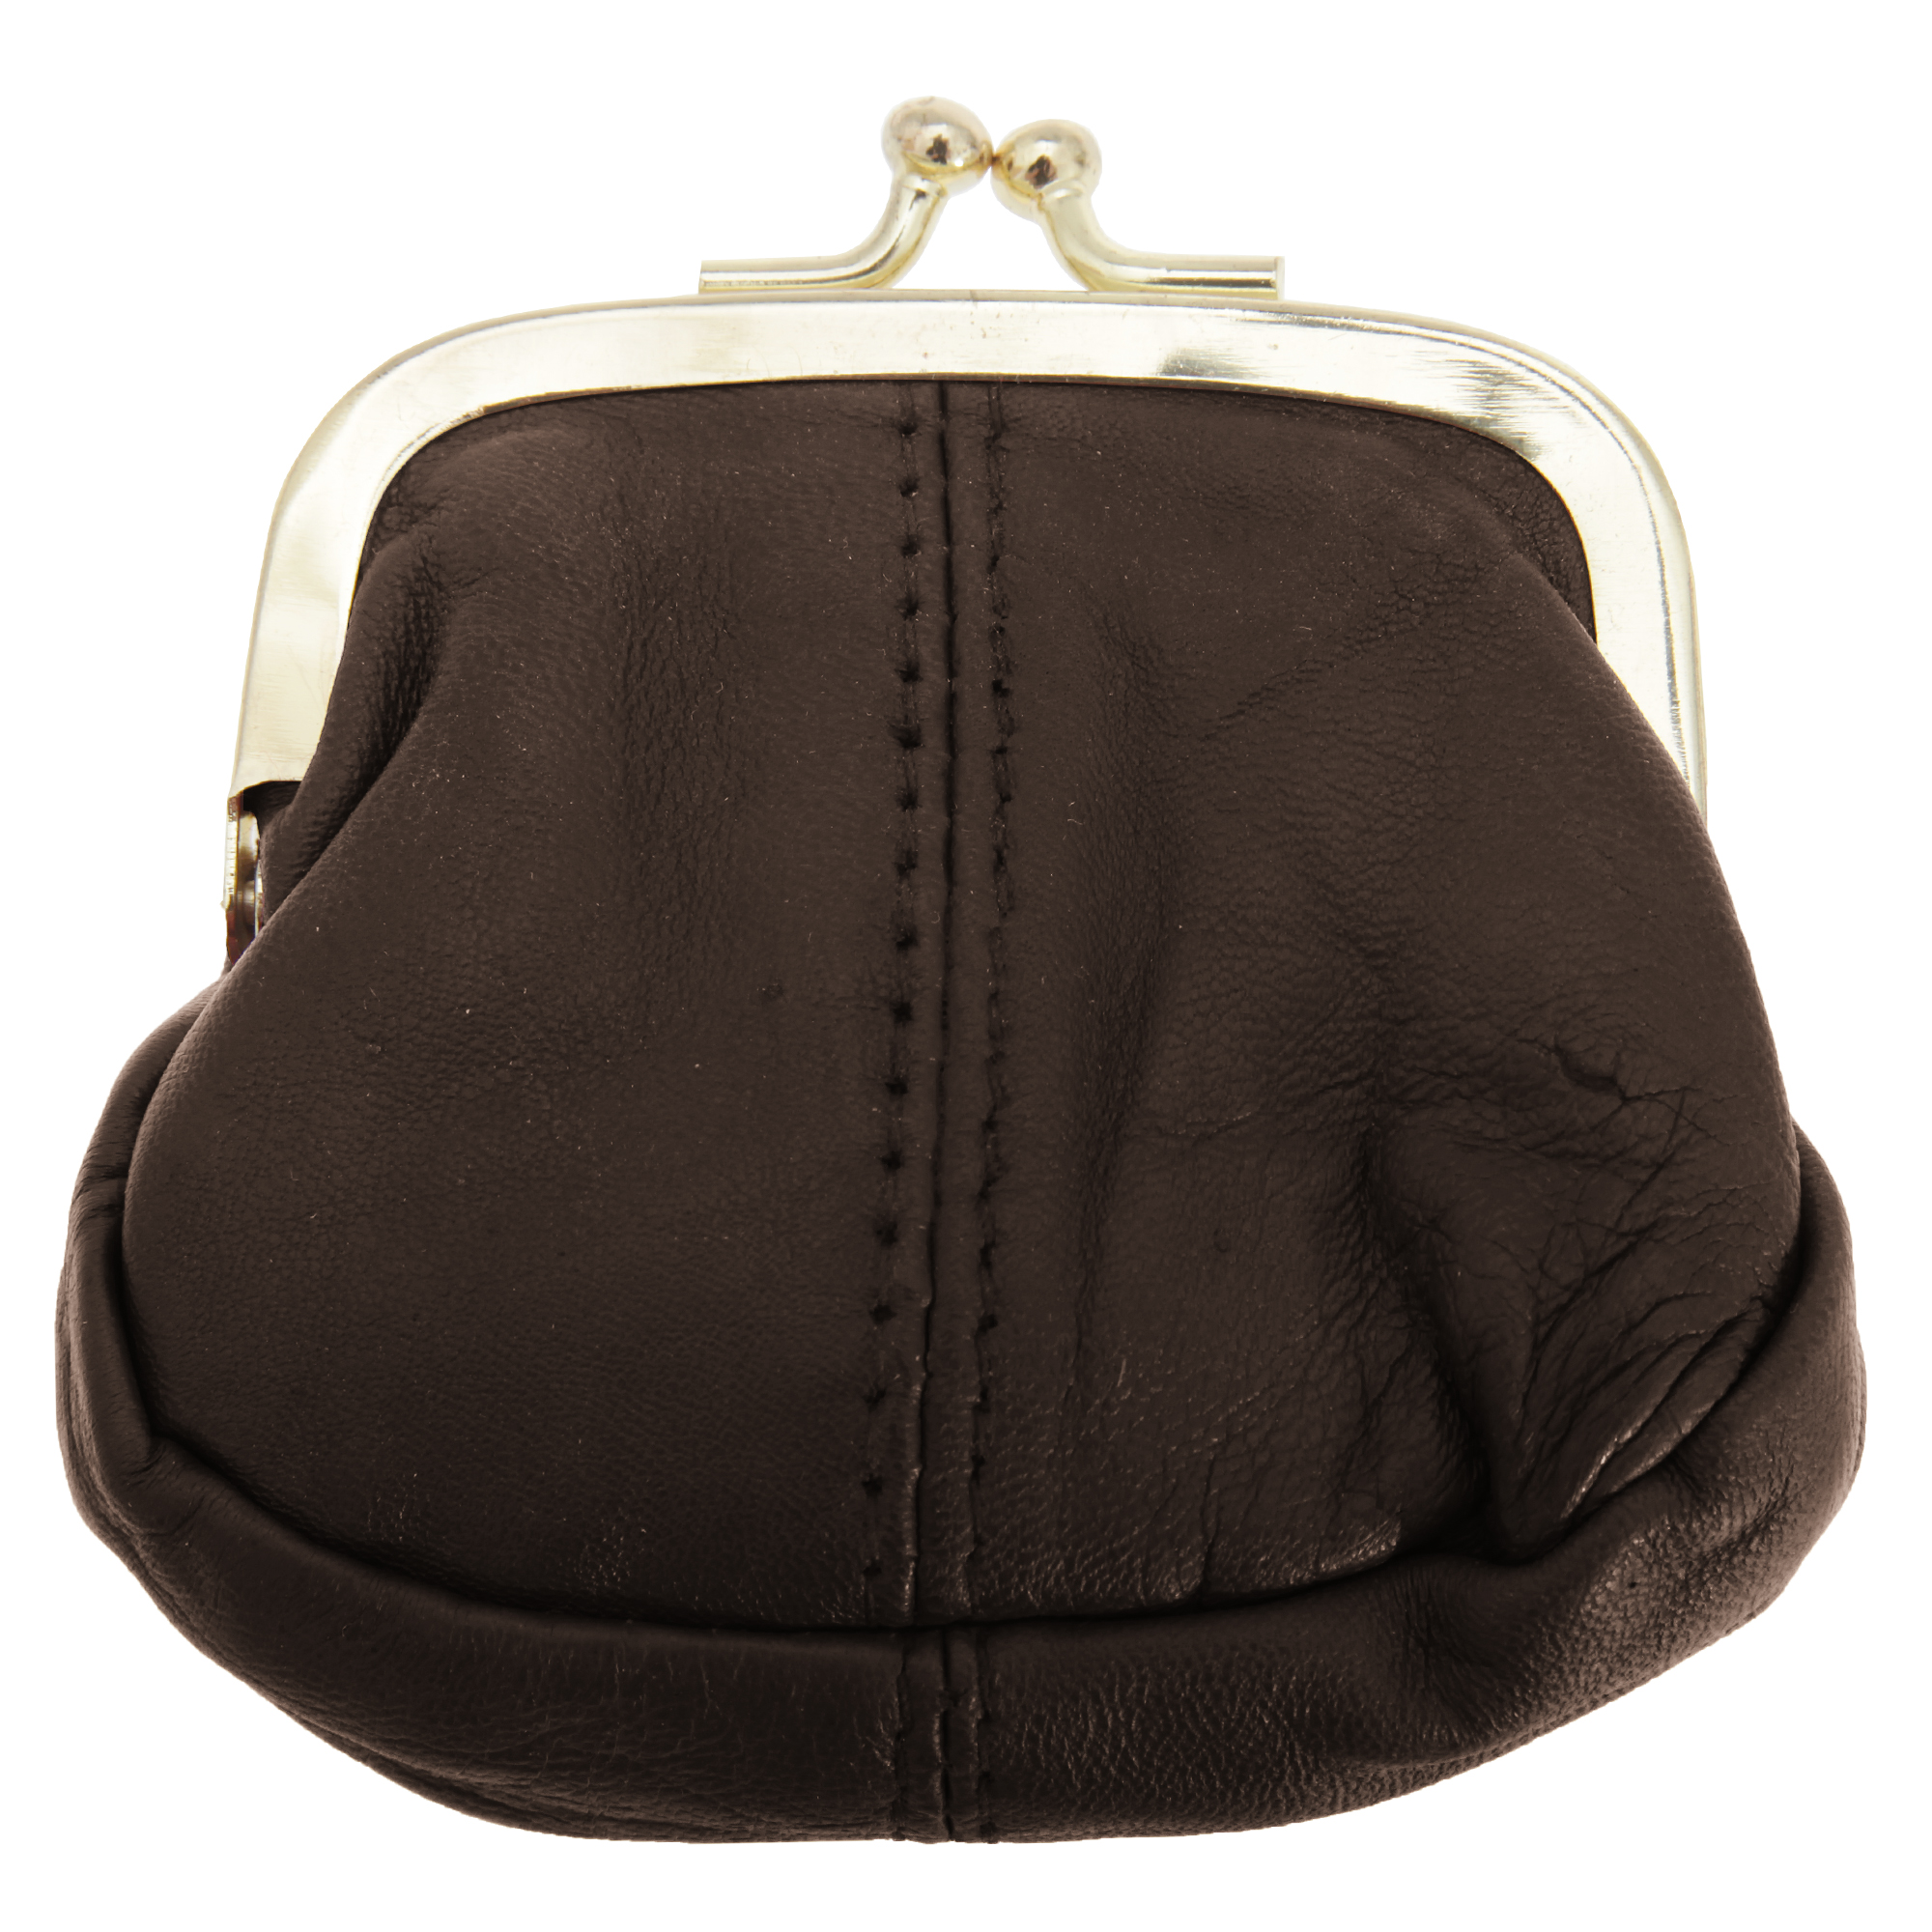 Womens/Ladies Soft Leather Coin Purse With Metal Clasp (One Size) (Brown)